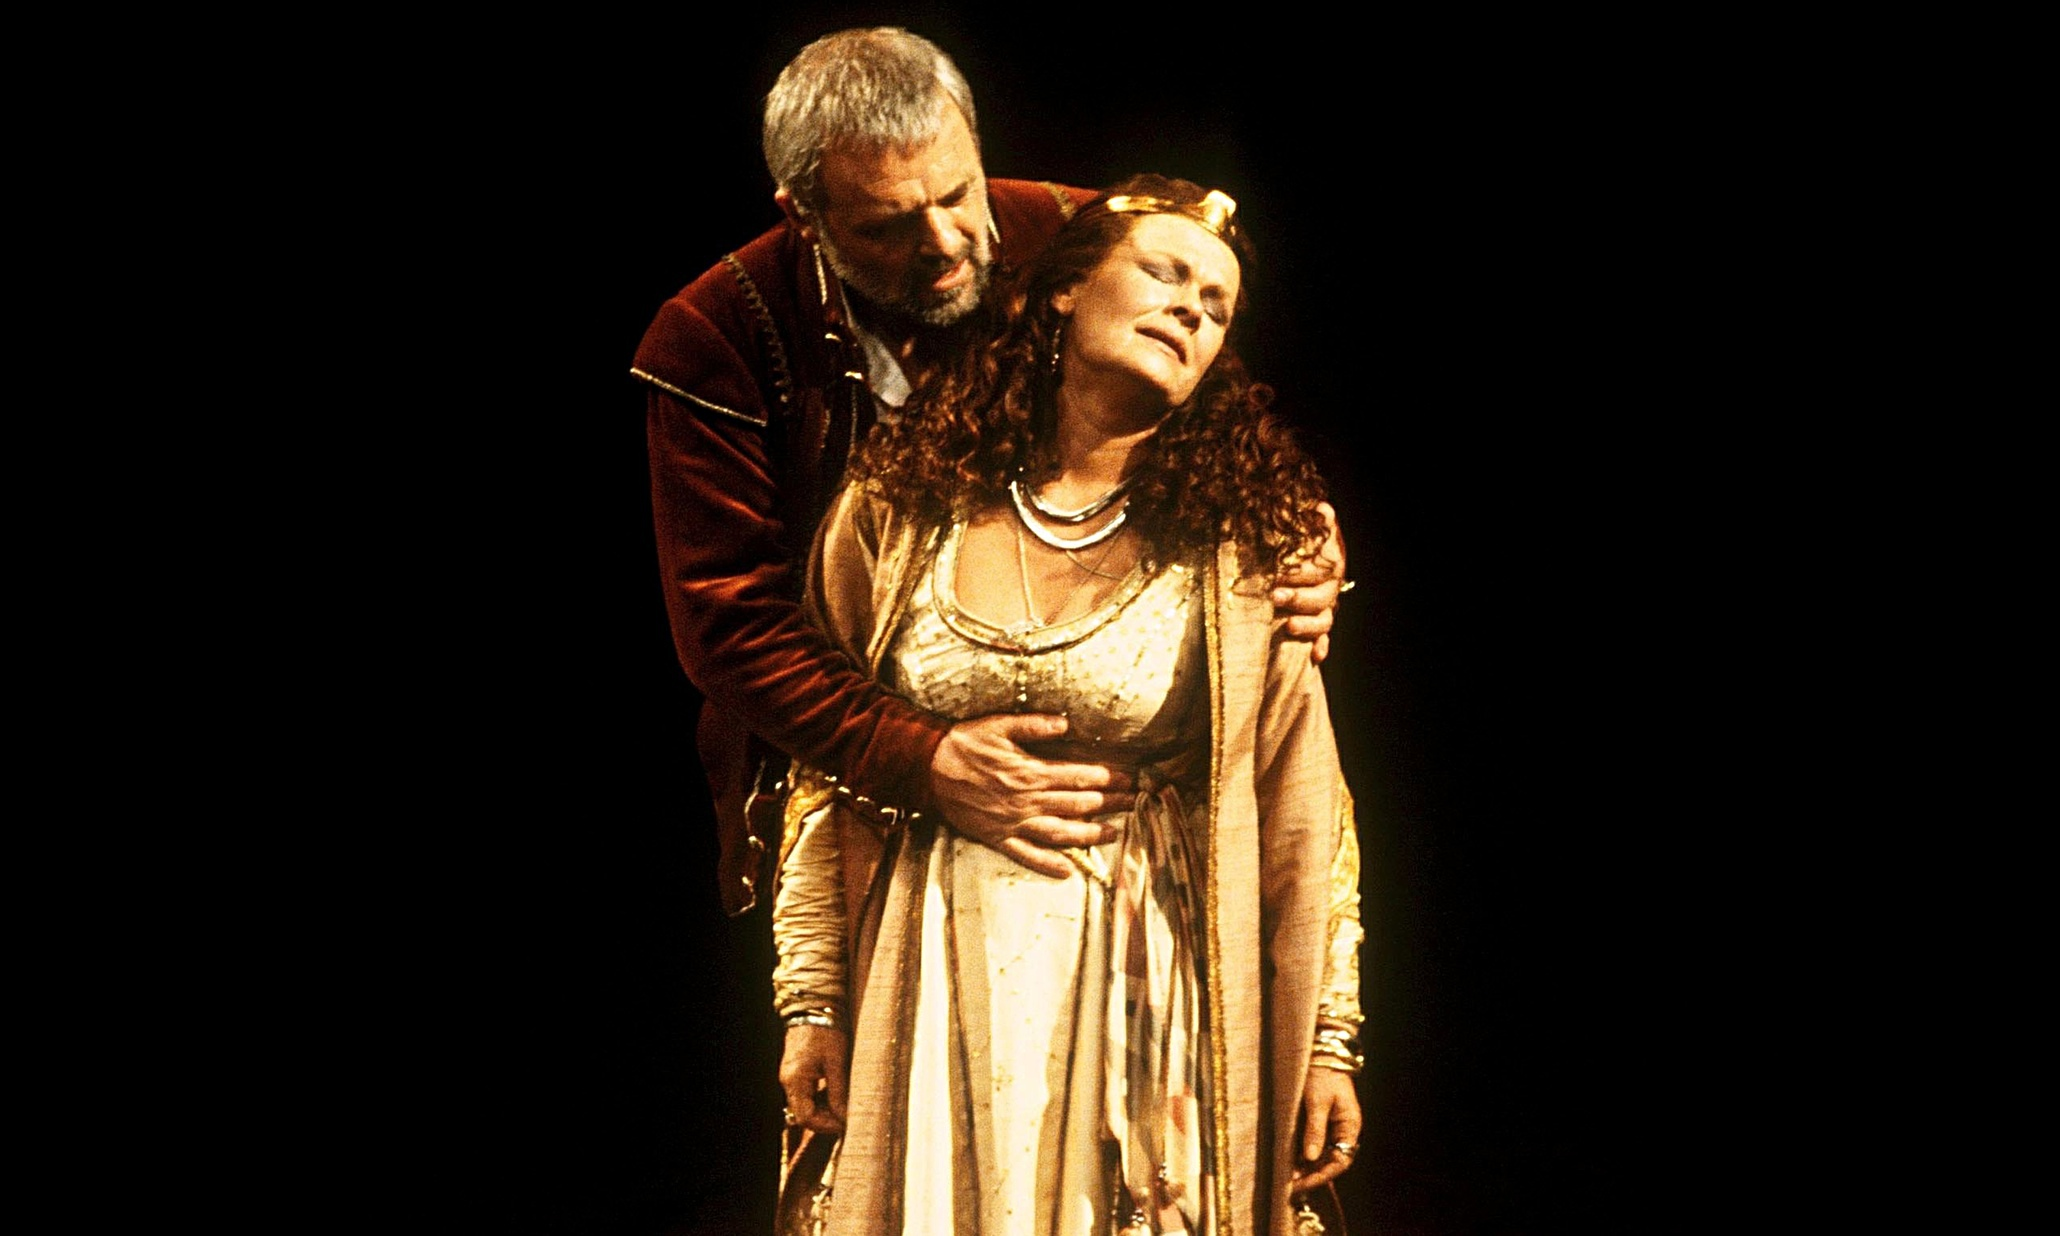 antony and cleopatra Essay on triumph over tragedy in antony and cleopatra - triumph over tragedy in antony and cleopatra a plot summary of antony and cleopatra would suggest that it.